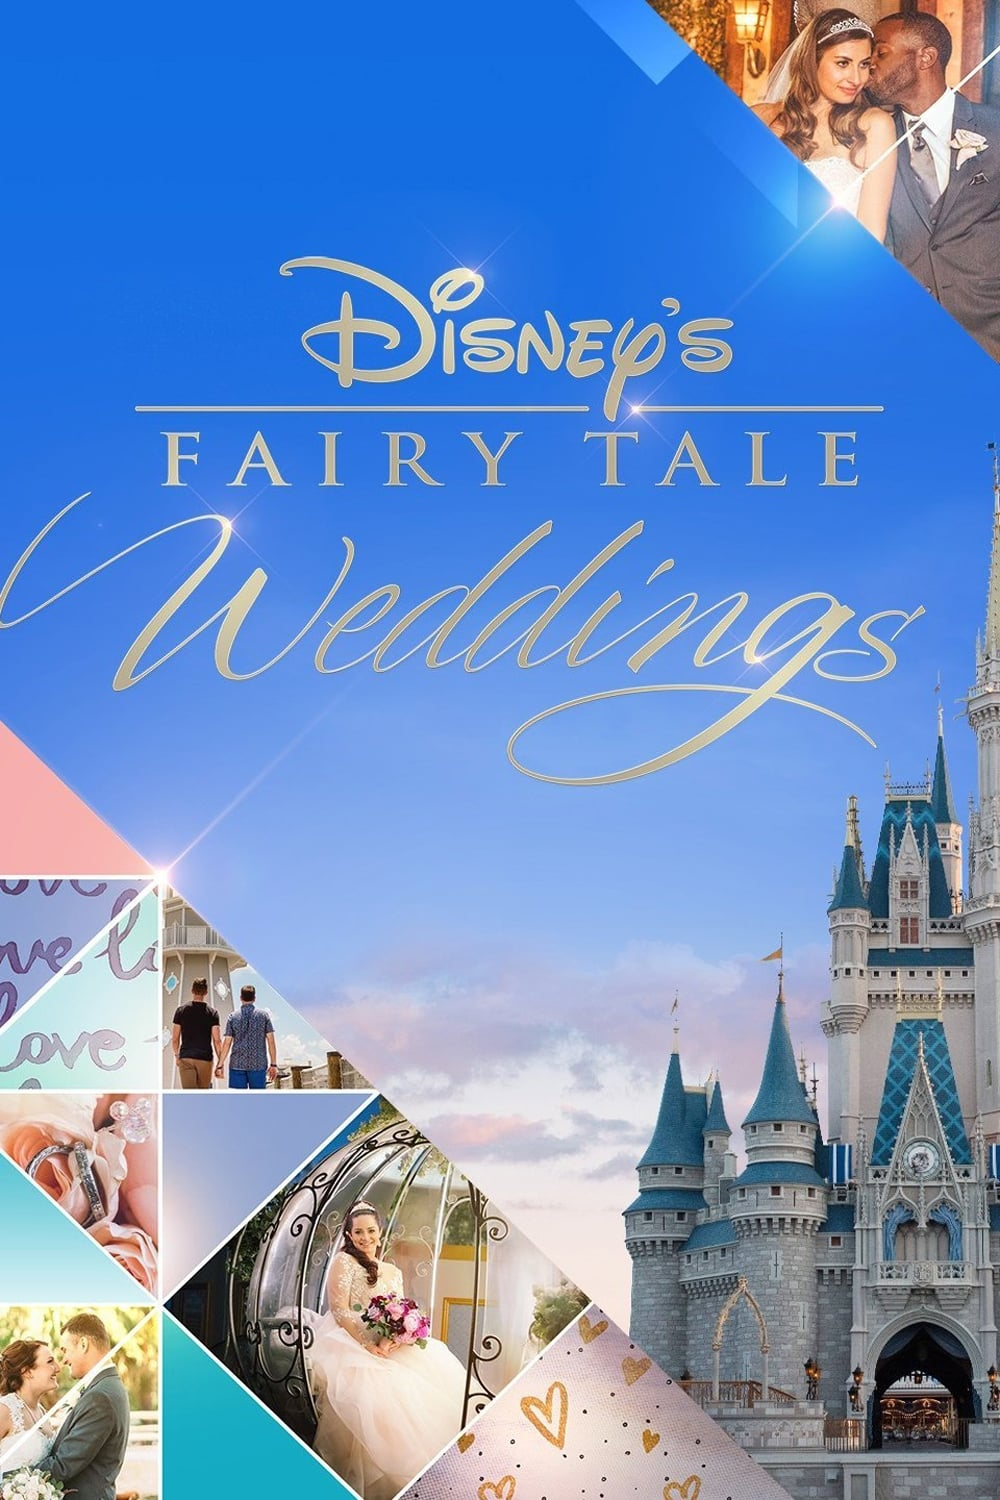 Disney's Fairy Tale Weddings Season 1